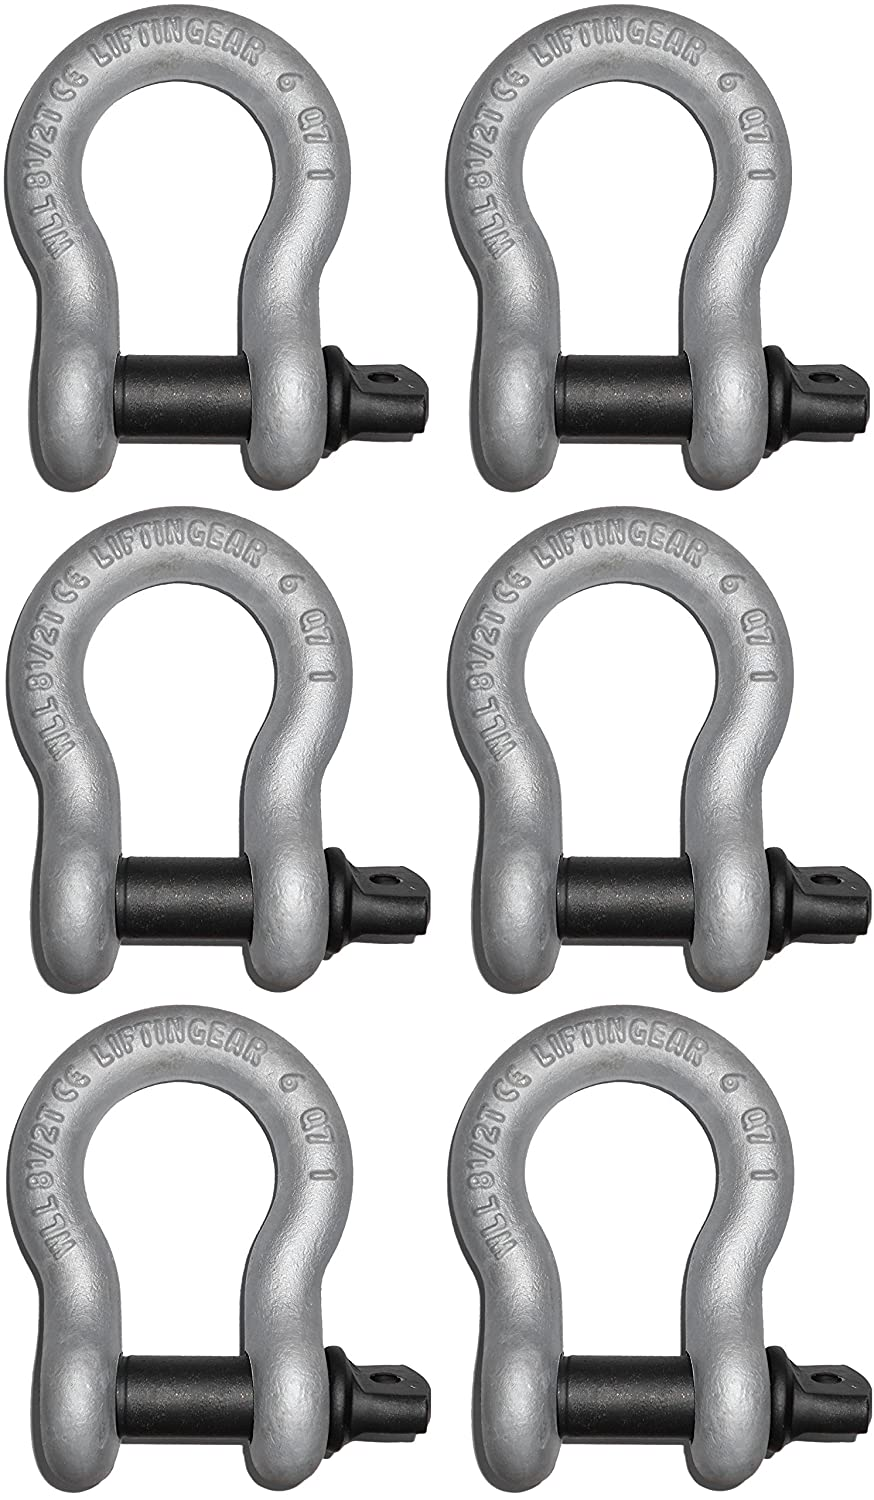 (6 Pack) LiftinGear Tested 1 Ton Galvanised Screw Pin Lifting Towing Alloy Bow Shackle 4x4 Offroad Recovery CE SafetyLiftinGear